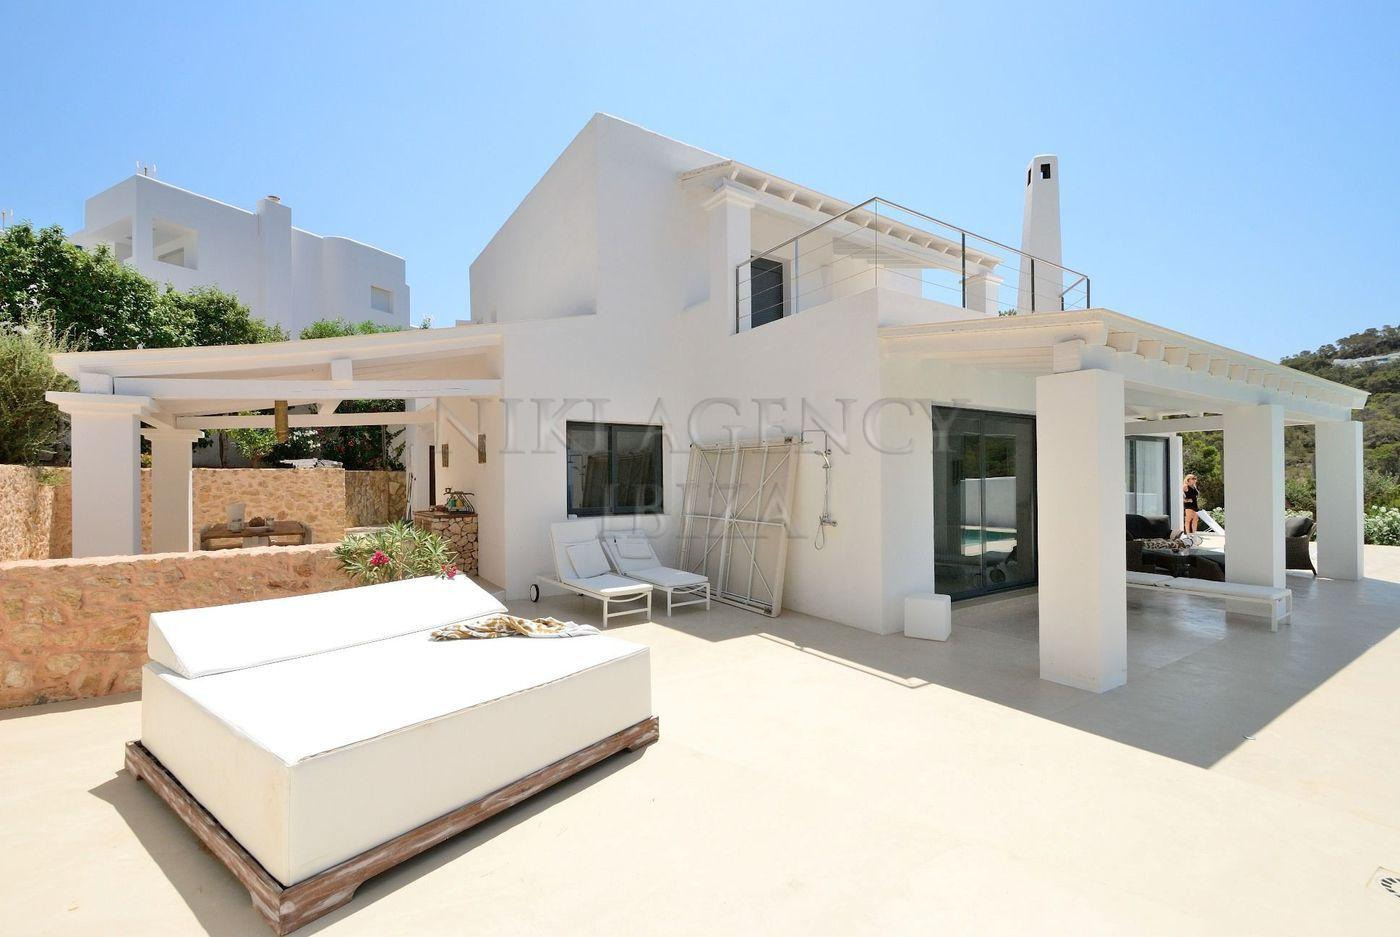 5. House for sale in Sant Josep de sa Talaia Ibiza - Fantastic 4 Bed Villa For Sale in Sant Josep de sa Talaia, Ibiza!